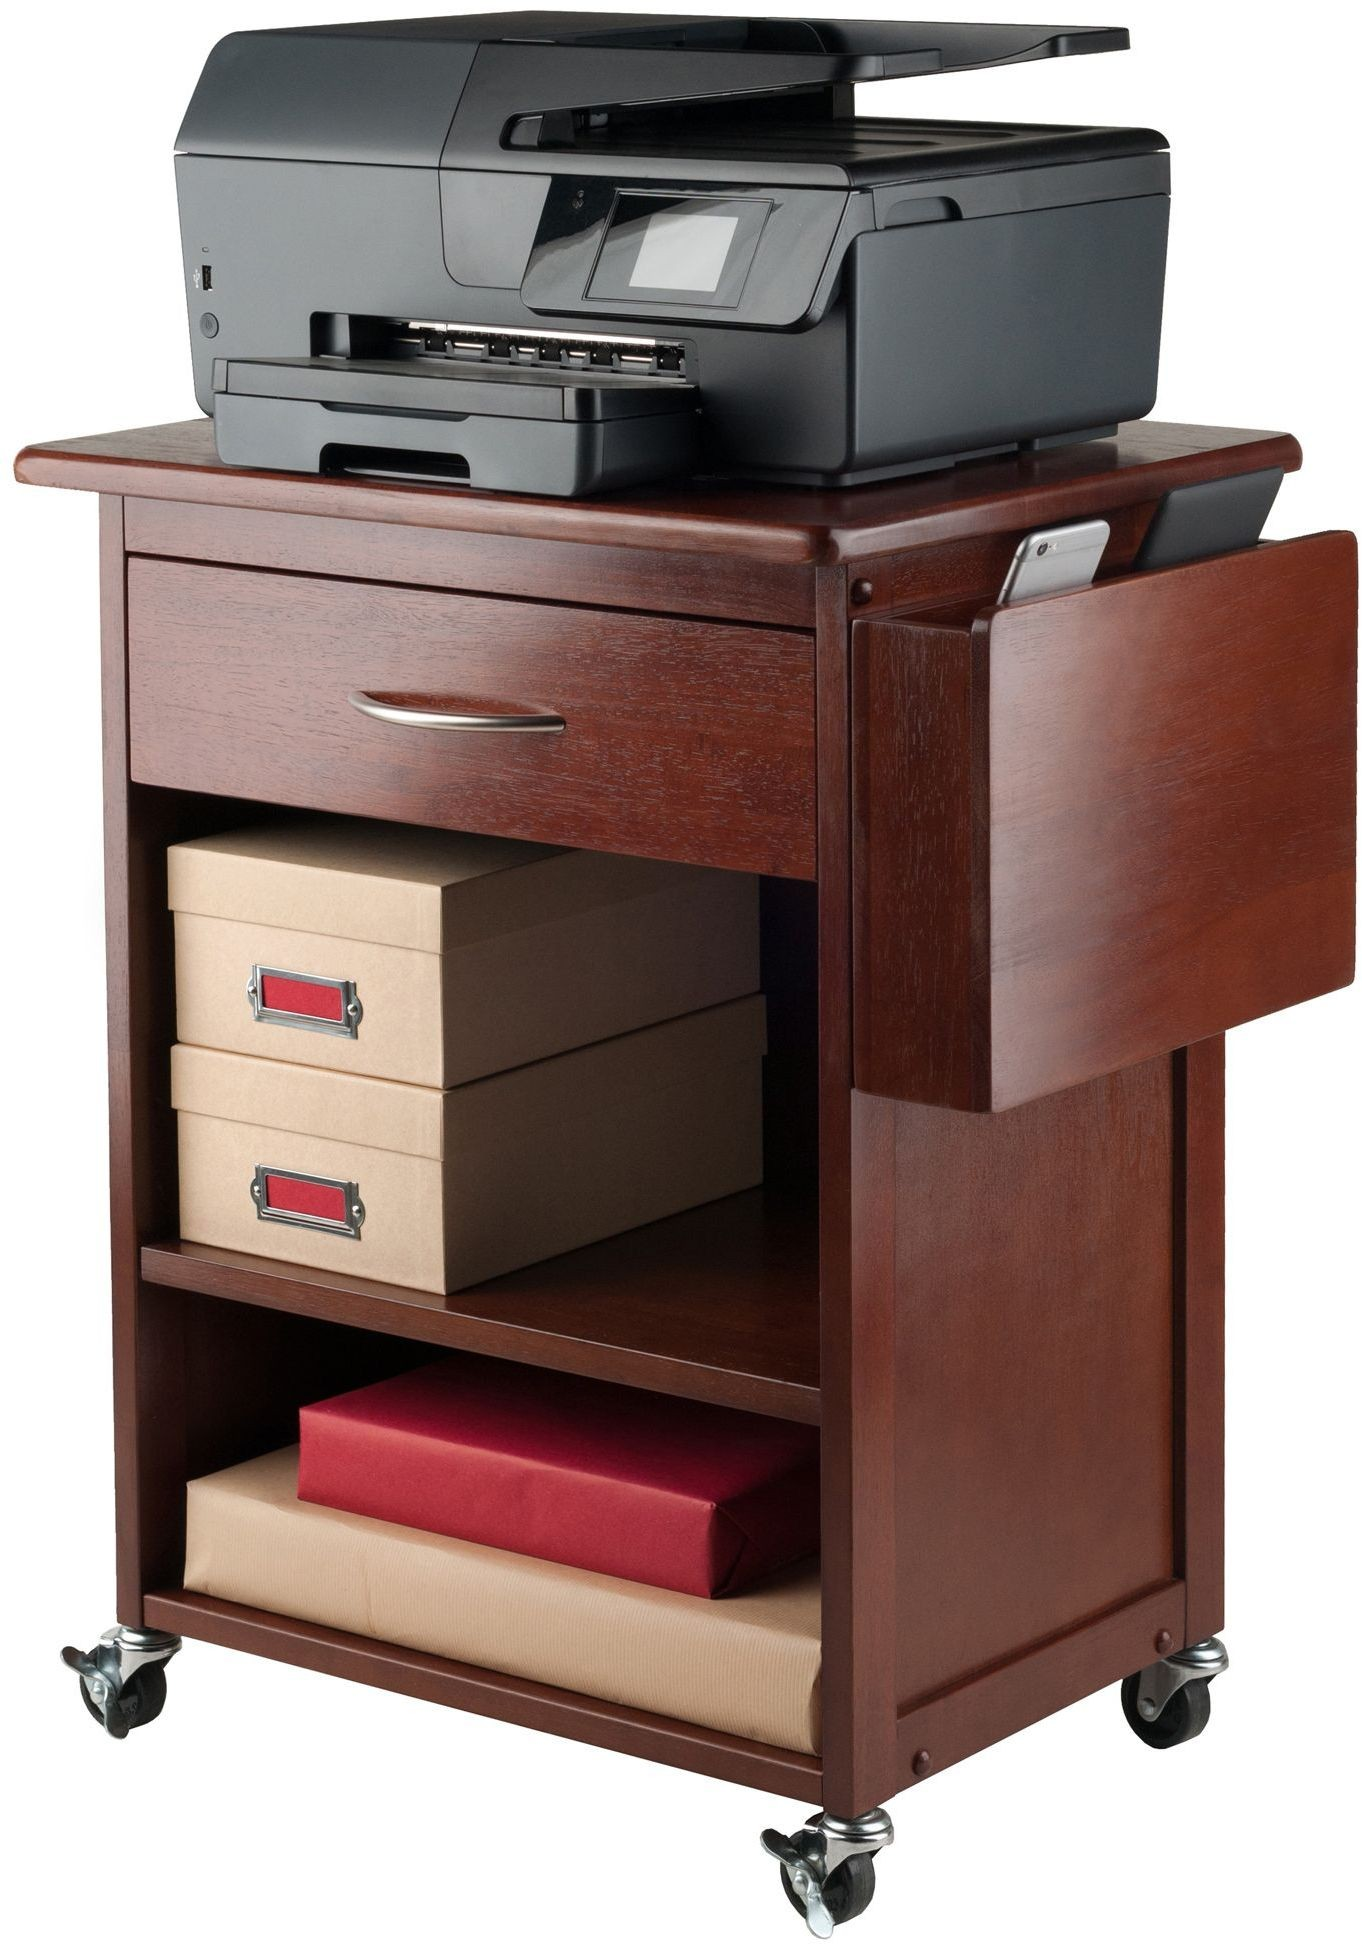 Maxwell Walnut Media Cart With Gadget Caddy From WinsomeWood | Coleman  Furniture